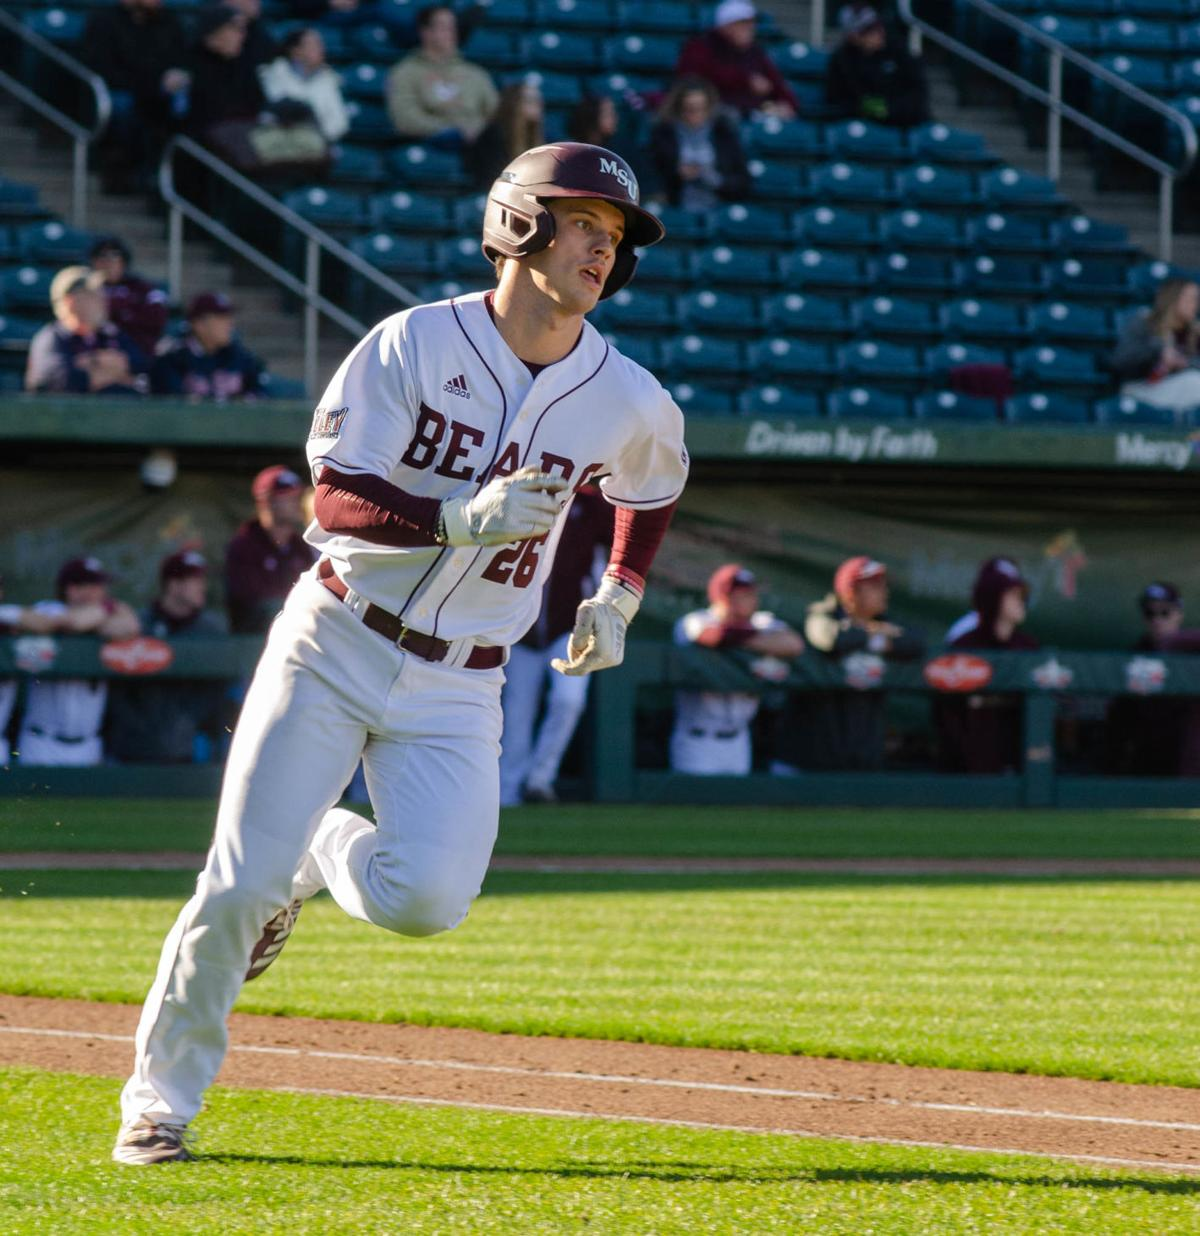 Greg Ziegler rounds the base.